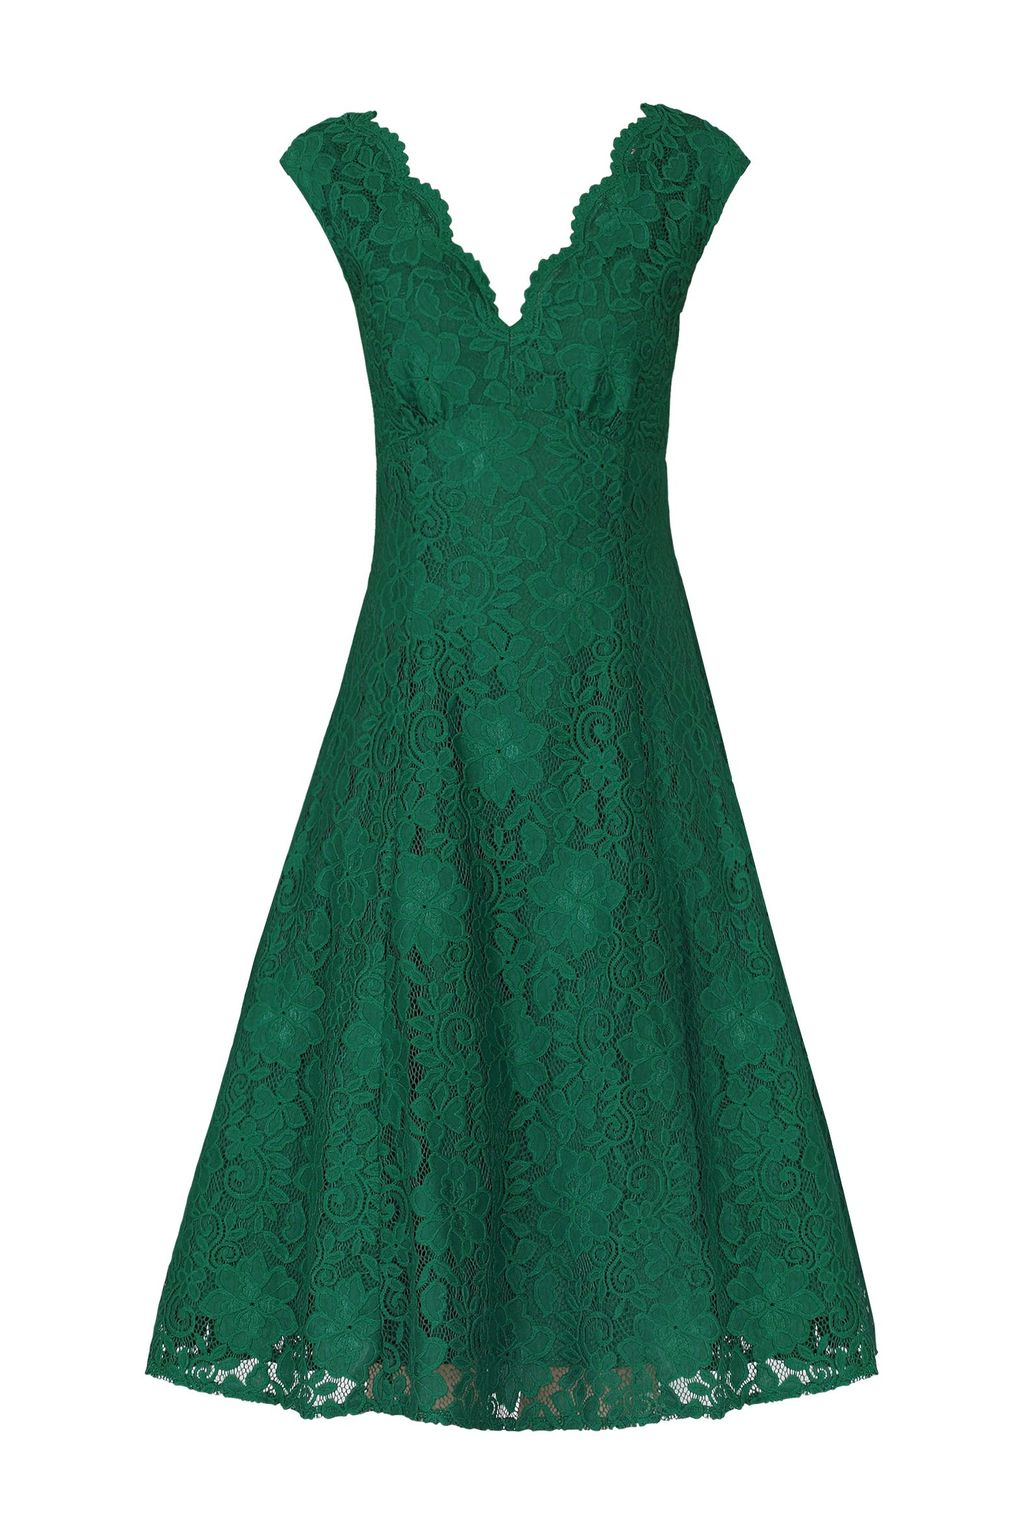 Empire Waistline Lace Dress, Green - length: below the knee; neckline: v-neck; sleeve style: sleeveless; predominant colour: emerald green; fit: fitted at waist & bust; style: fit & flare; fibres: polyester/polyamide - stretch; occasions: occasion; sleeve length: sleeveless; texture group: lace; pattern type: fabric; pattern size: standard; pattern: patterned/print; embellishment: lace; season: s/s 2016; wardrobe: event